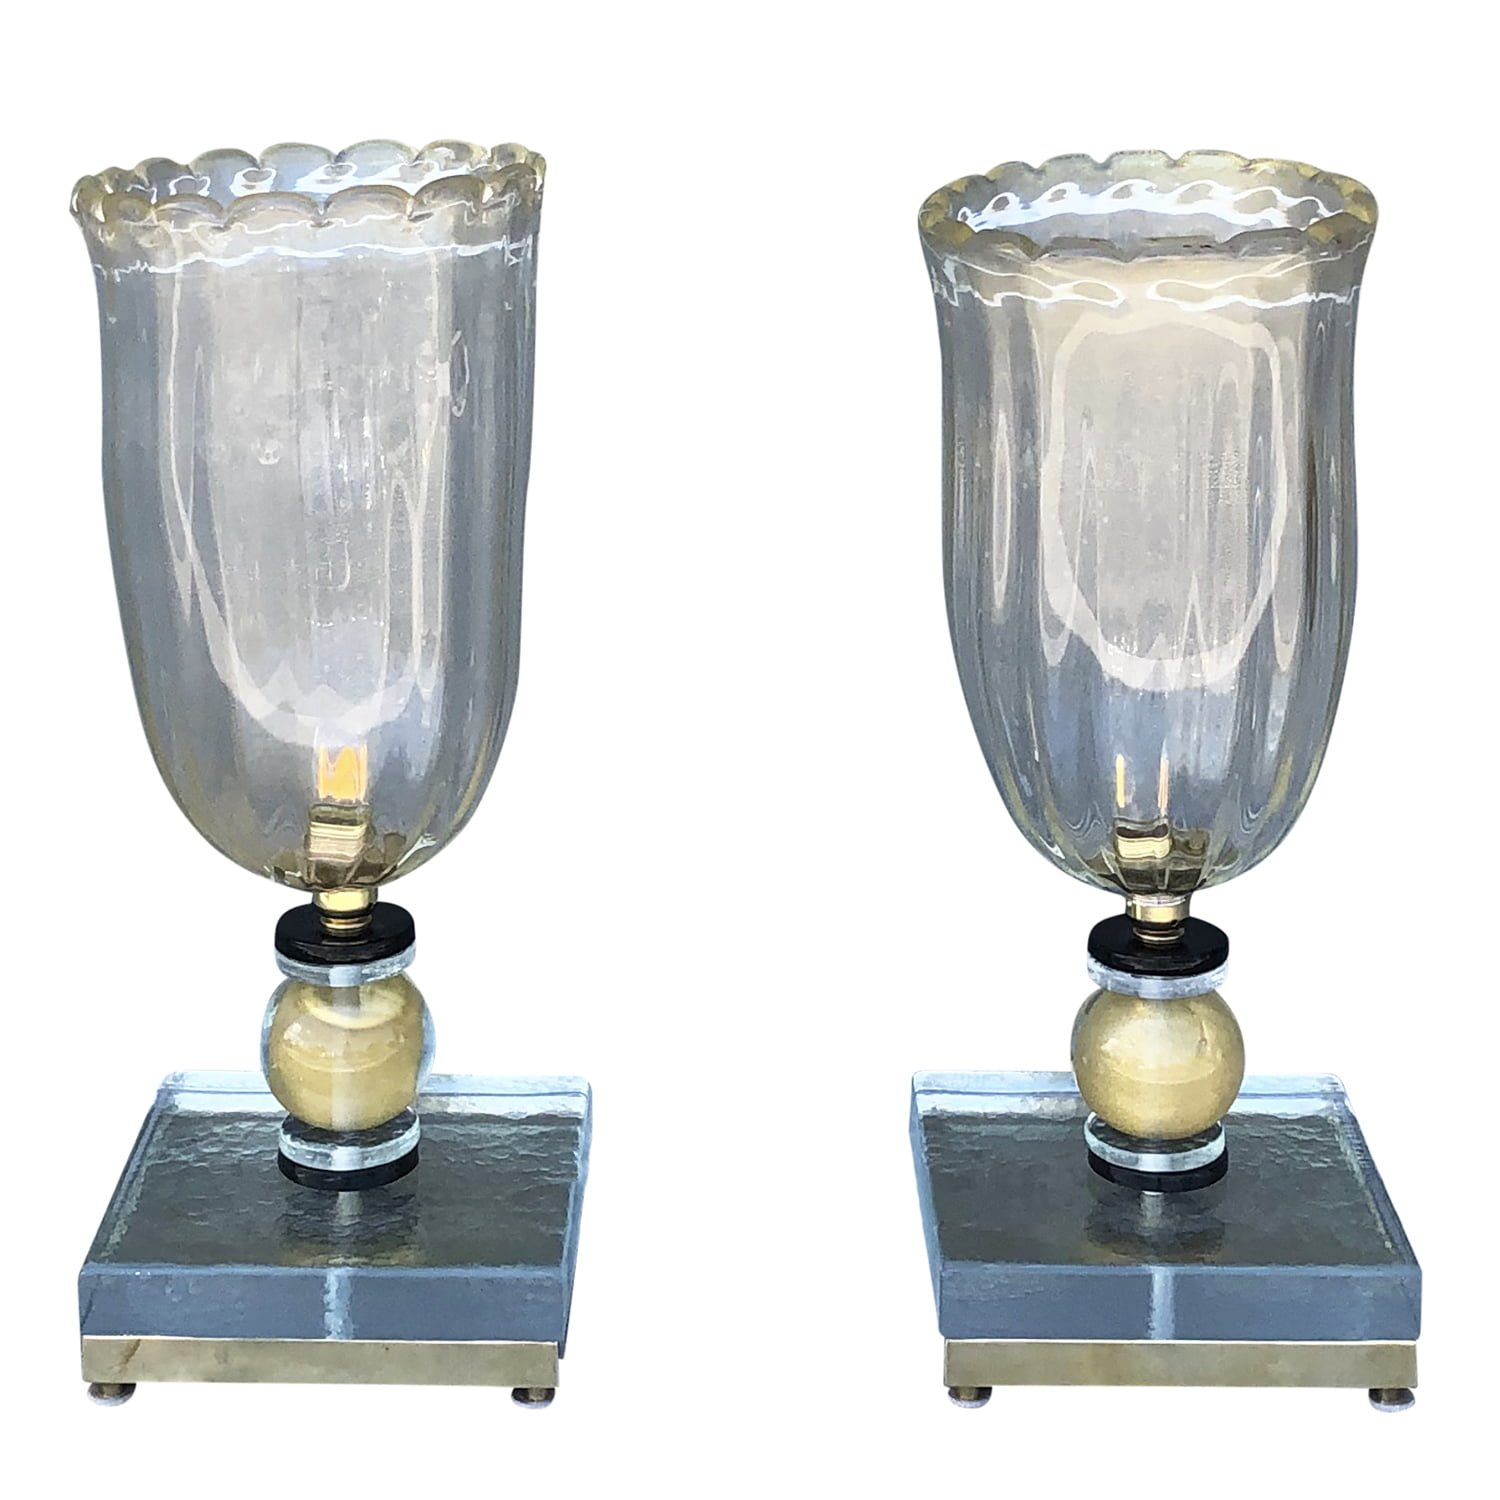 20th Century Vintage Italian Pair of Murano Glass Table Lamps by Nardo